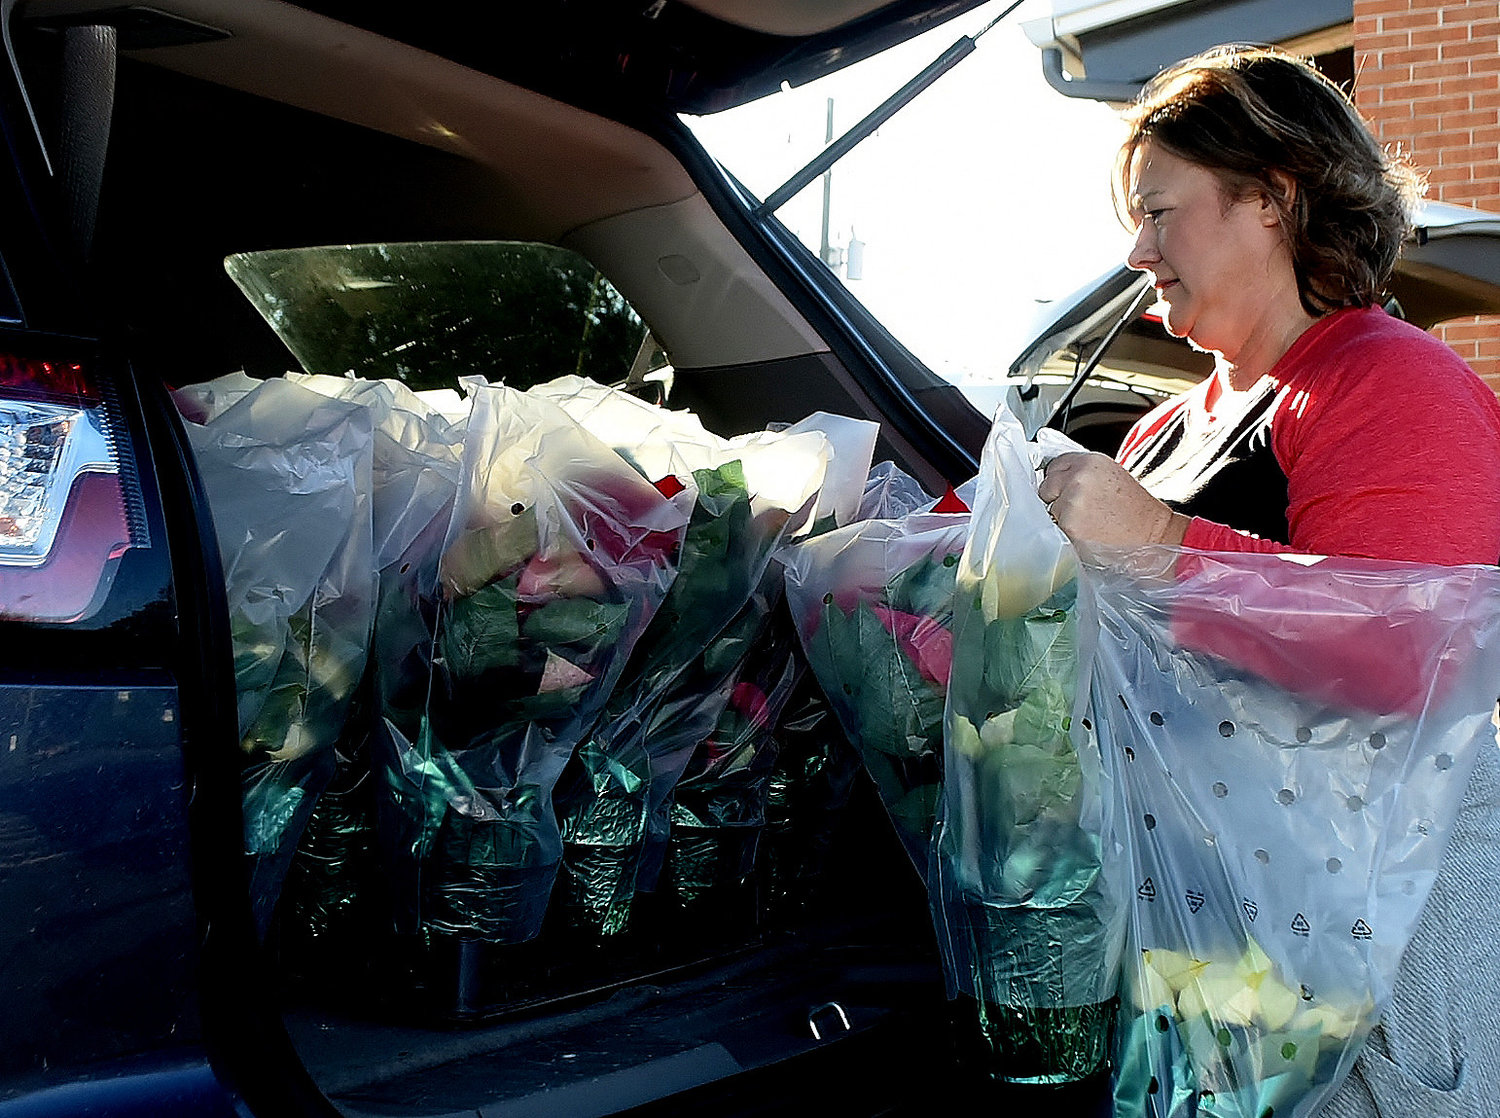 Cartersville Service League member Michelle Martin loads poinsettias into her car for delivery.